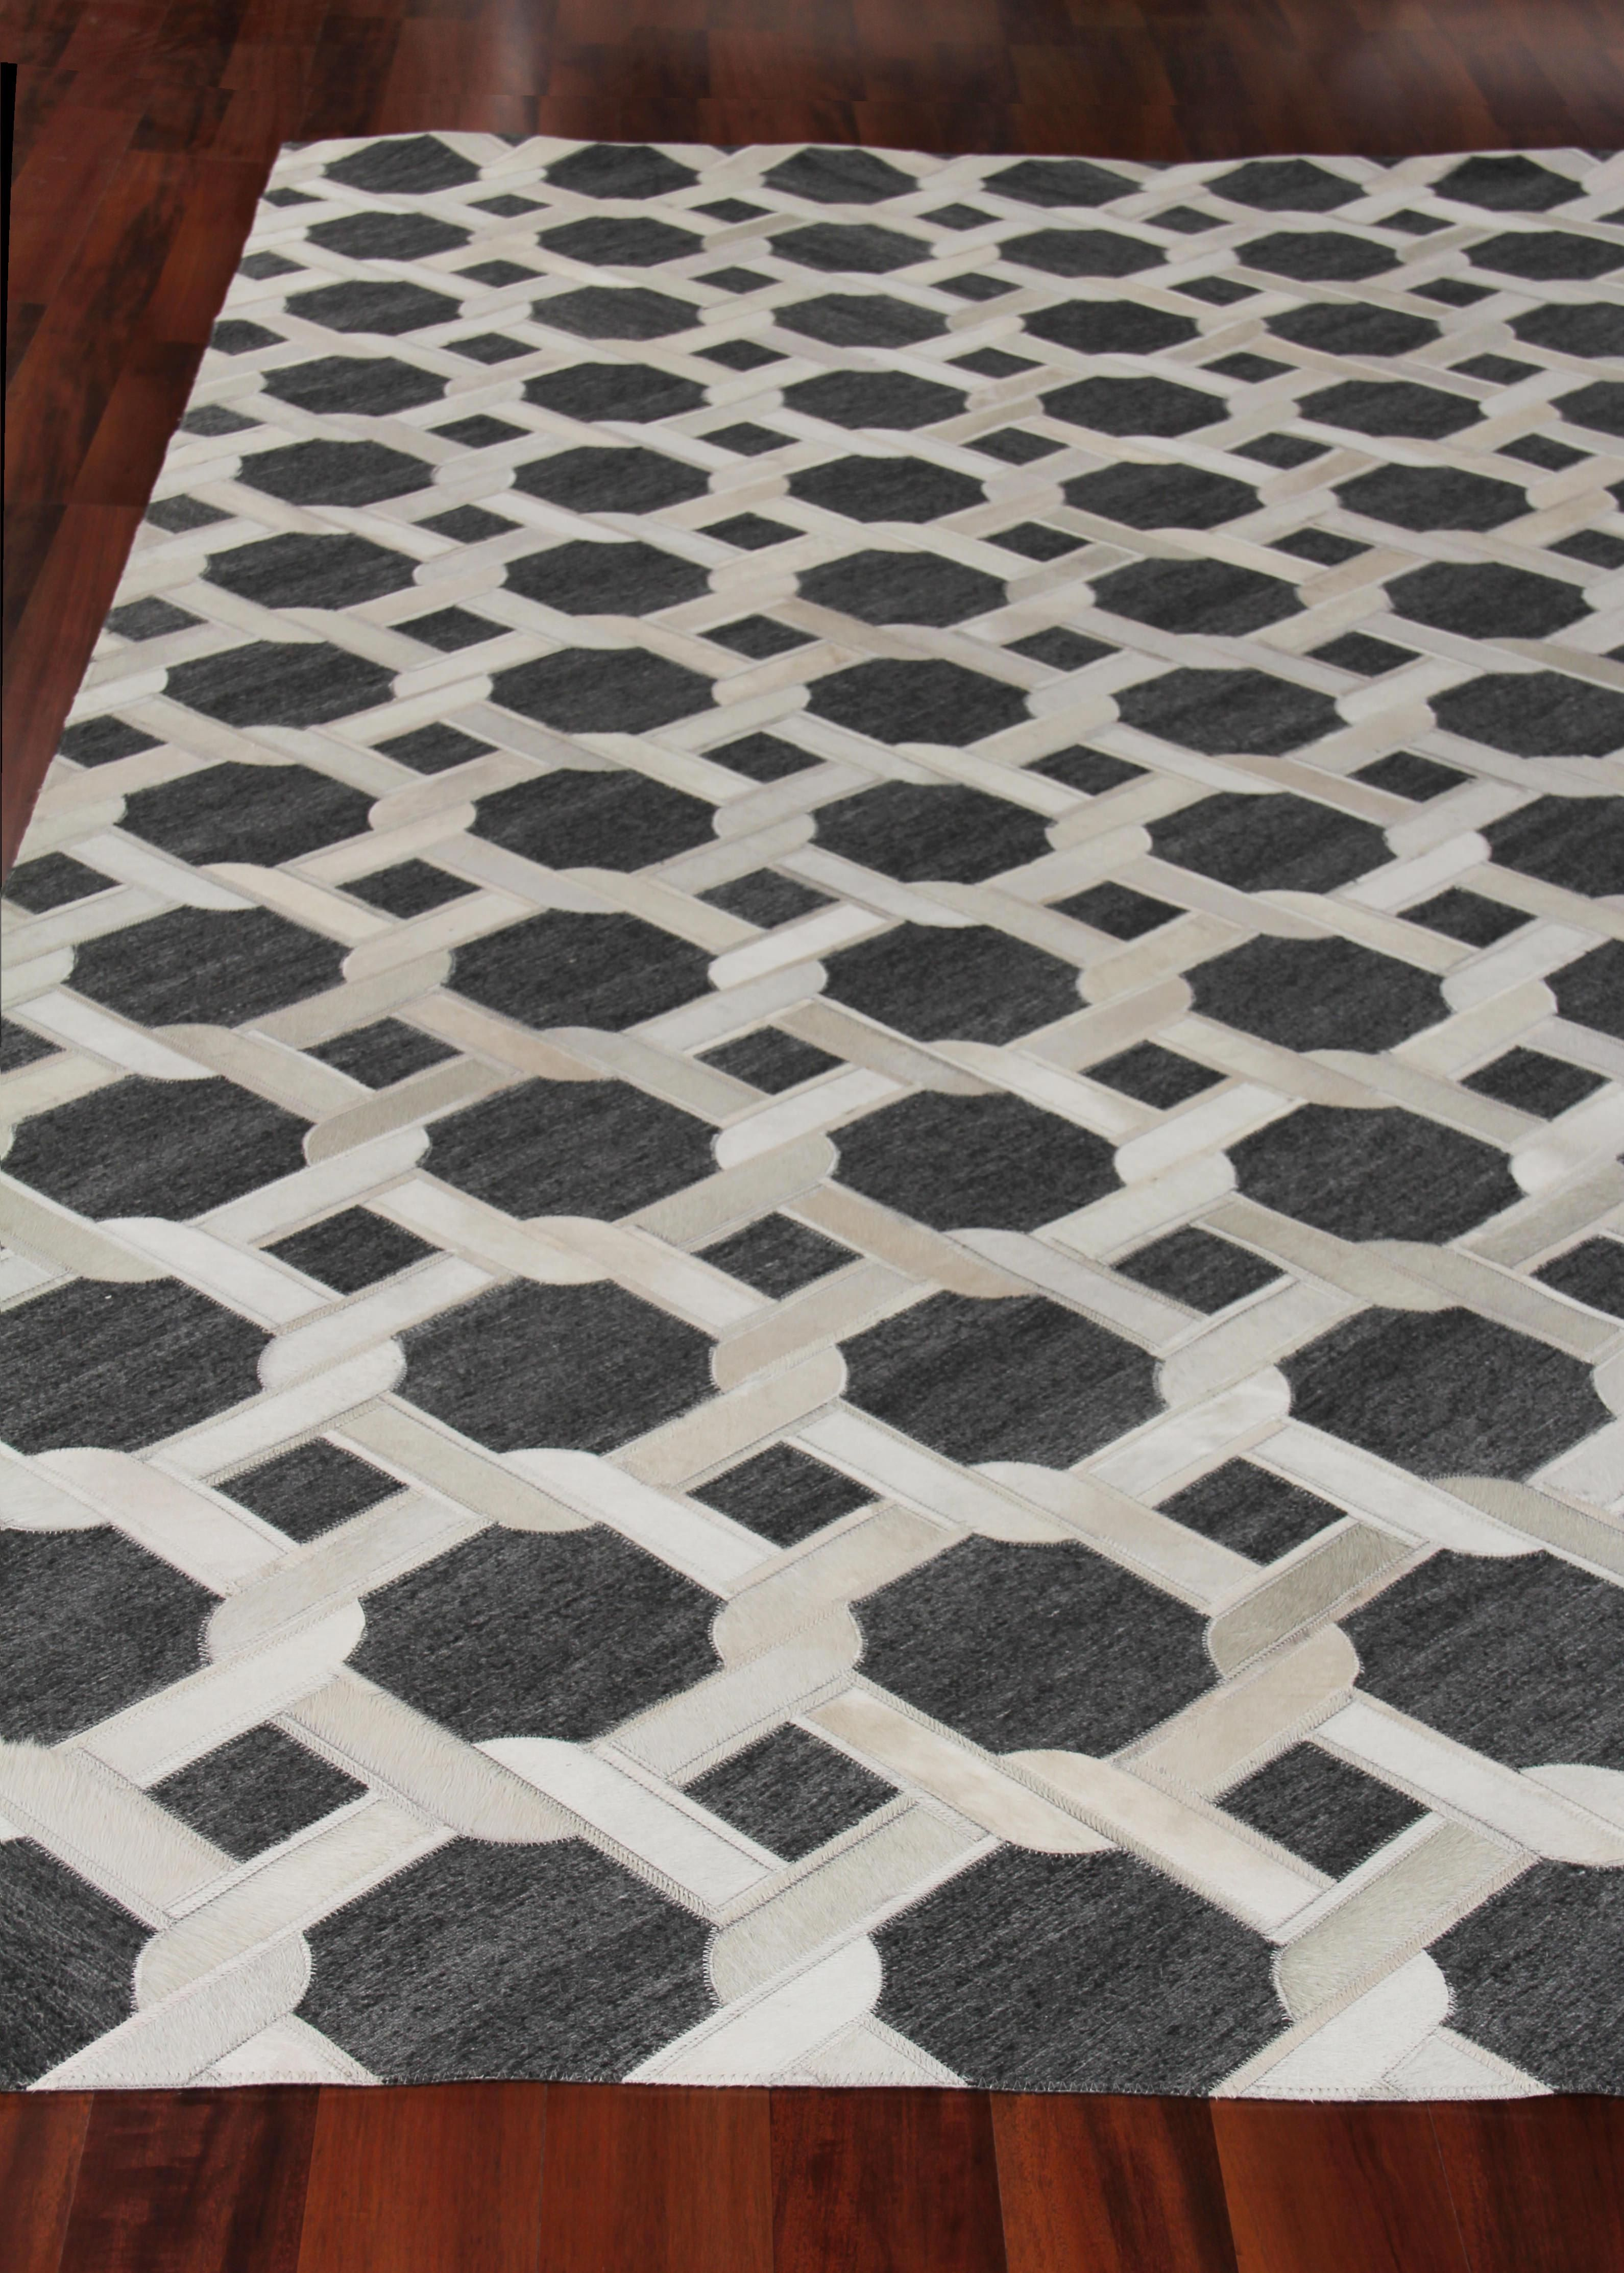 Exquisite Rugs Berlin Hand Stitched 3798 Charcoal Ivory Area Rug Exquisite Rugs Rugs Hand Tufted Rugs